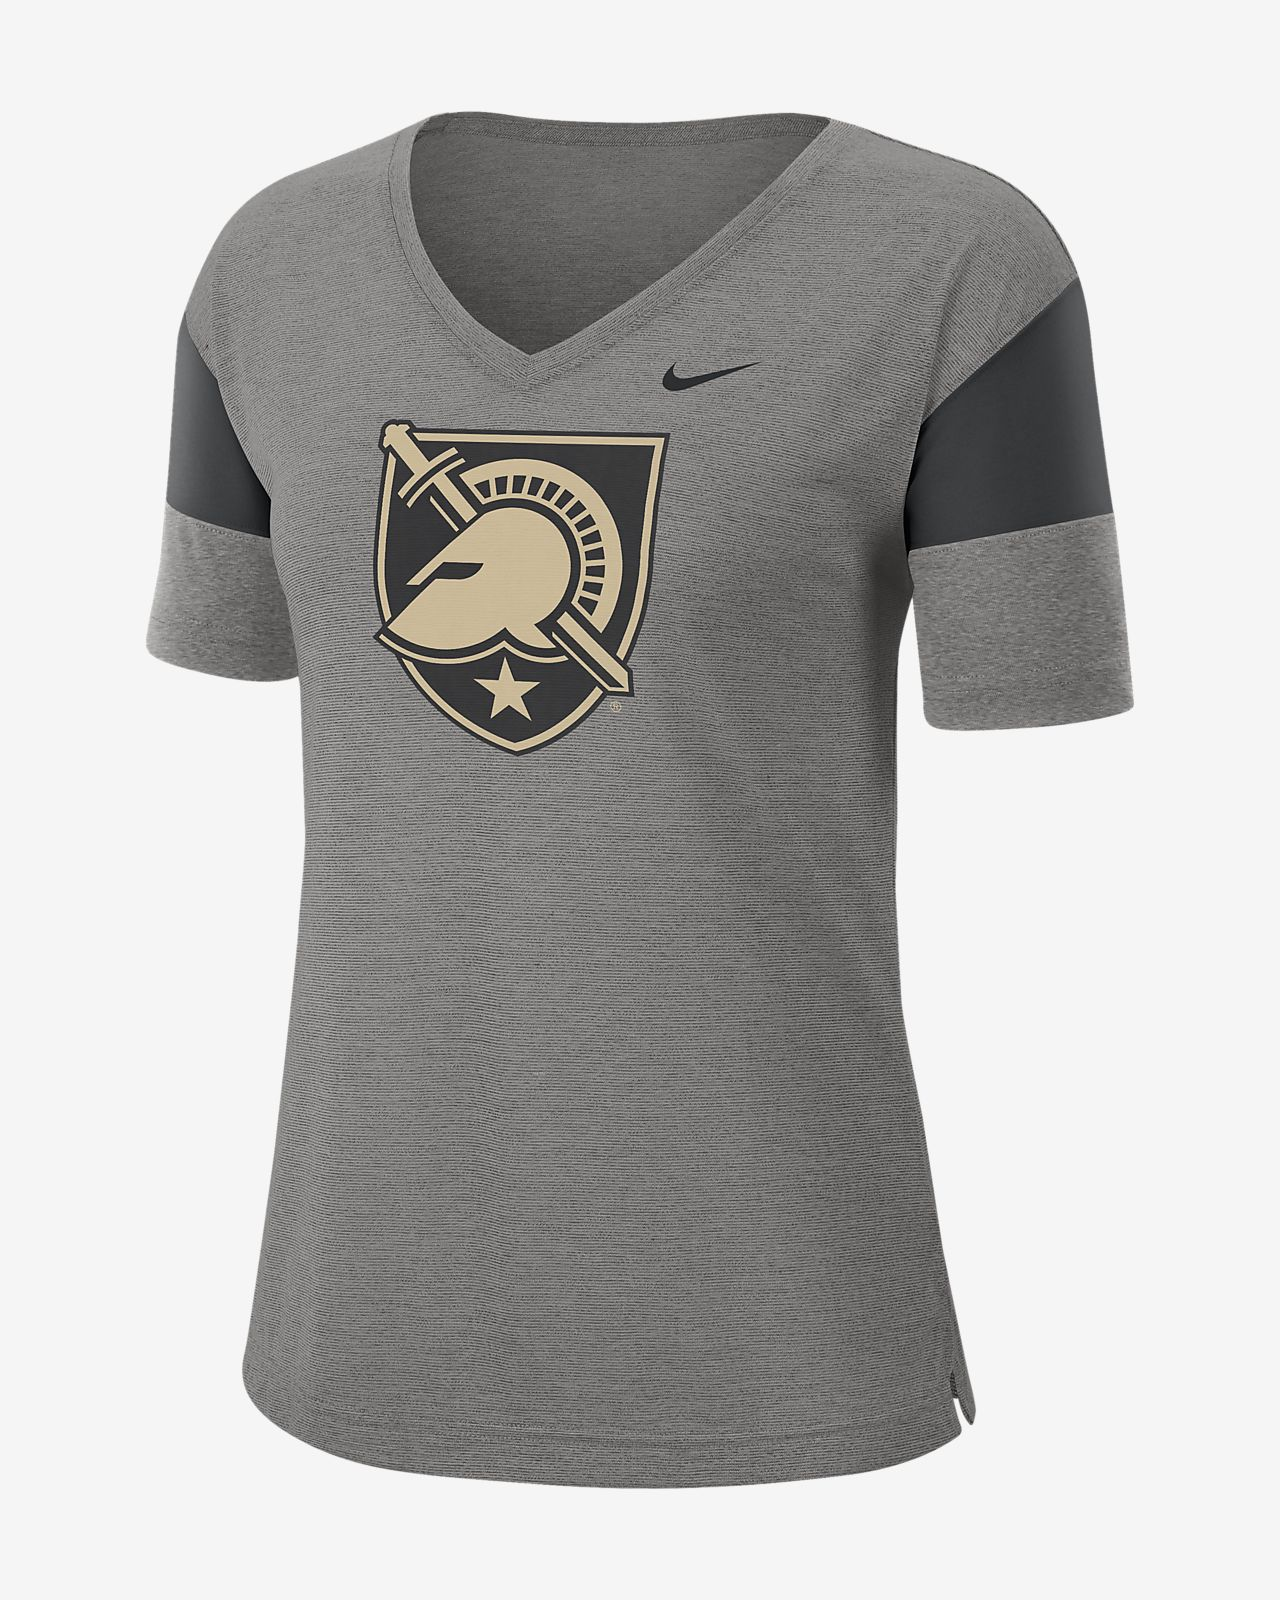 Nike College Breathe (Army) Women's Short-Sleeve V-Neck Top